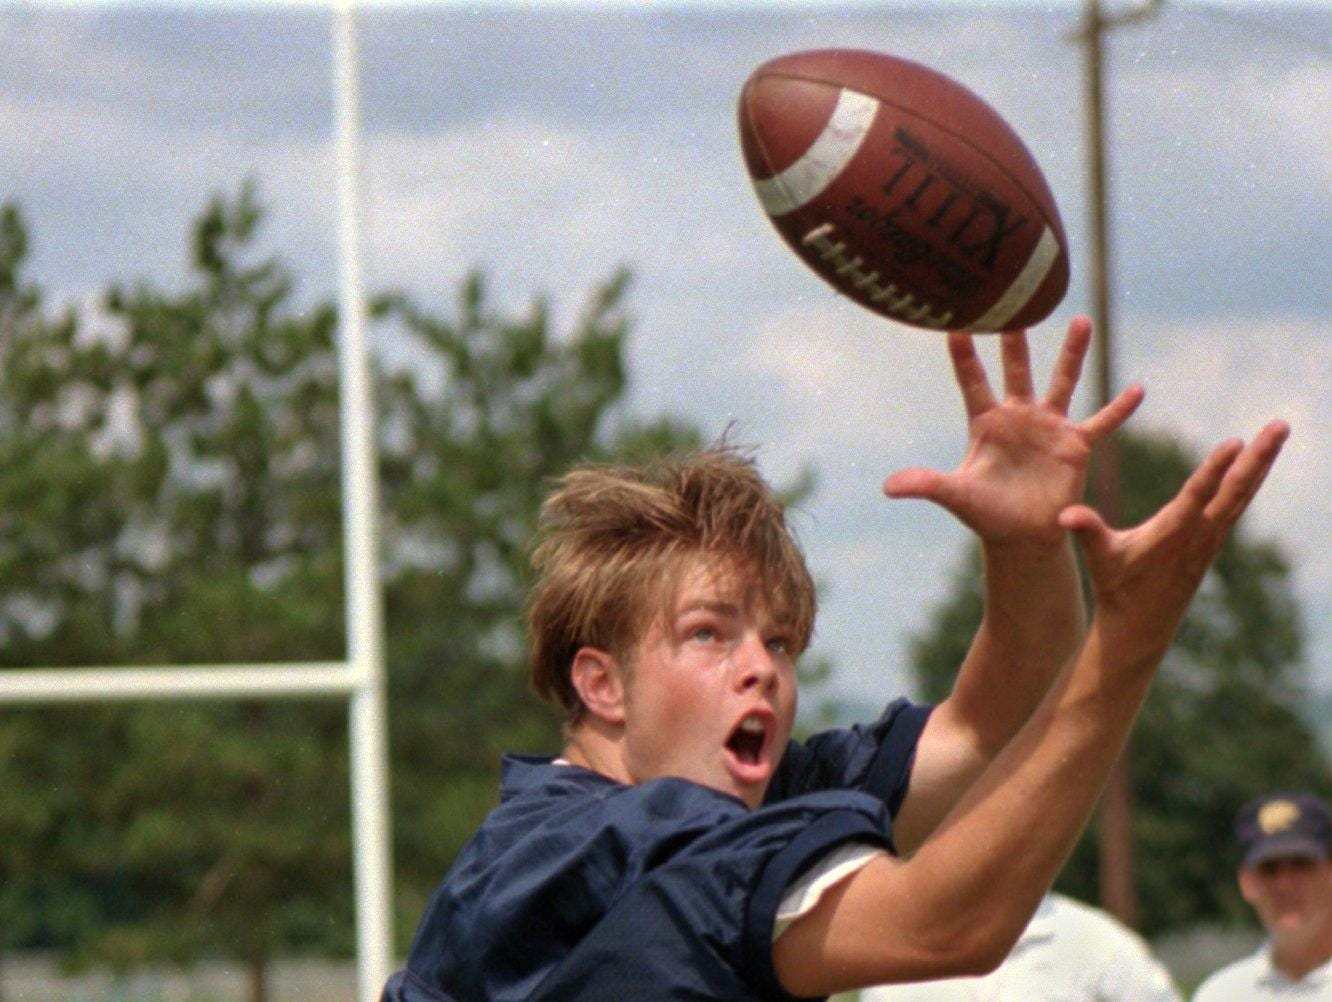 From 1996: Susquehanna Valley's Kasey Gabriel leaps for the ball during a recent practice.